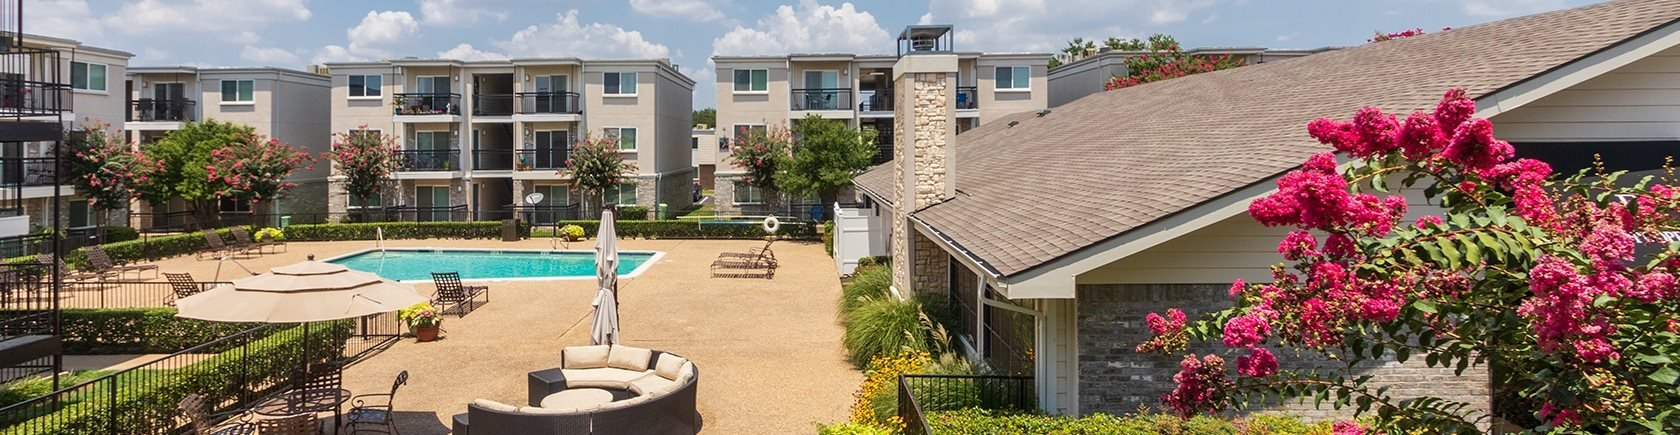 This is a photo of the pool area at The Summit at Midtown Apartments in Dallas, TX.